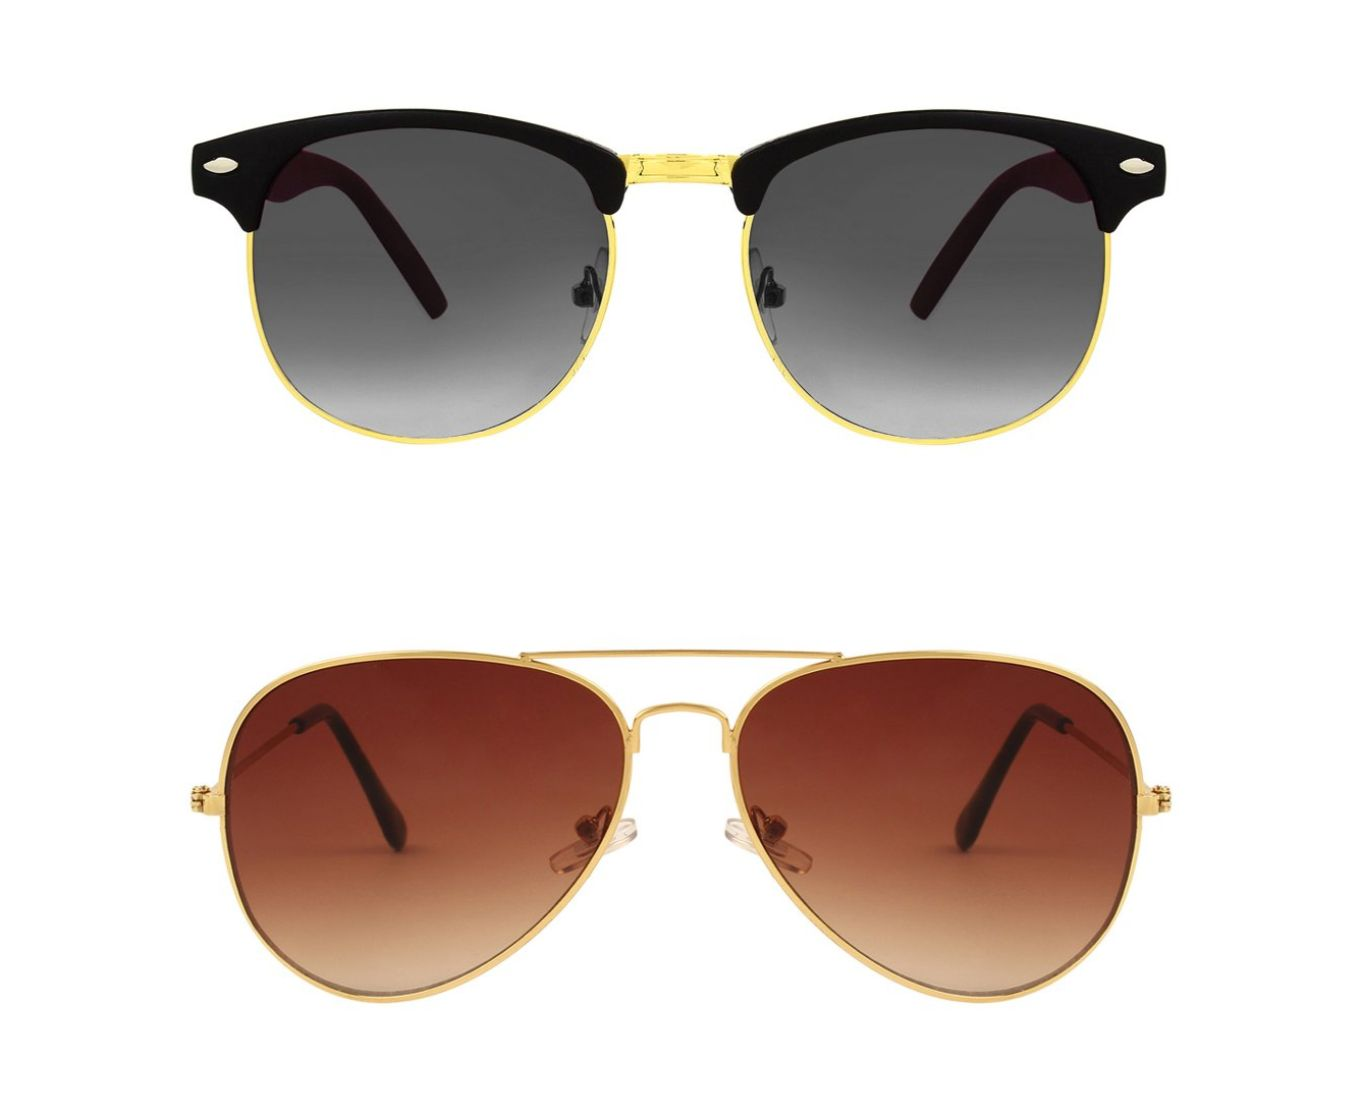 ETRG Unisex Premium  Aviators Brown Metal Sunglasses (Pack of 2)